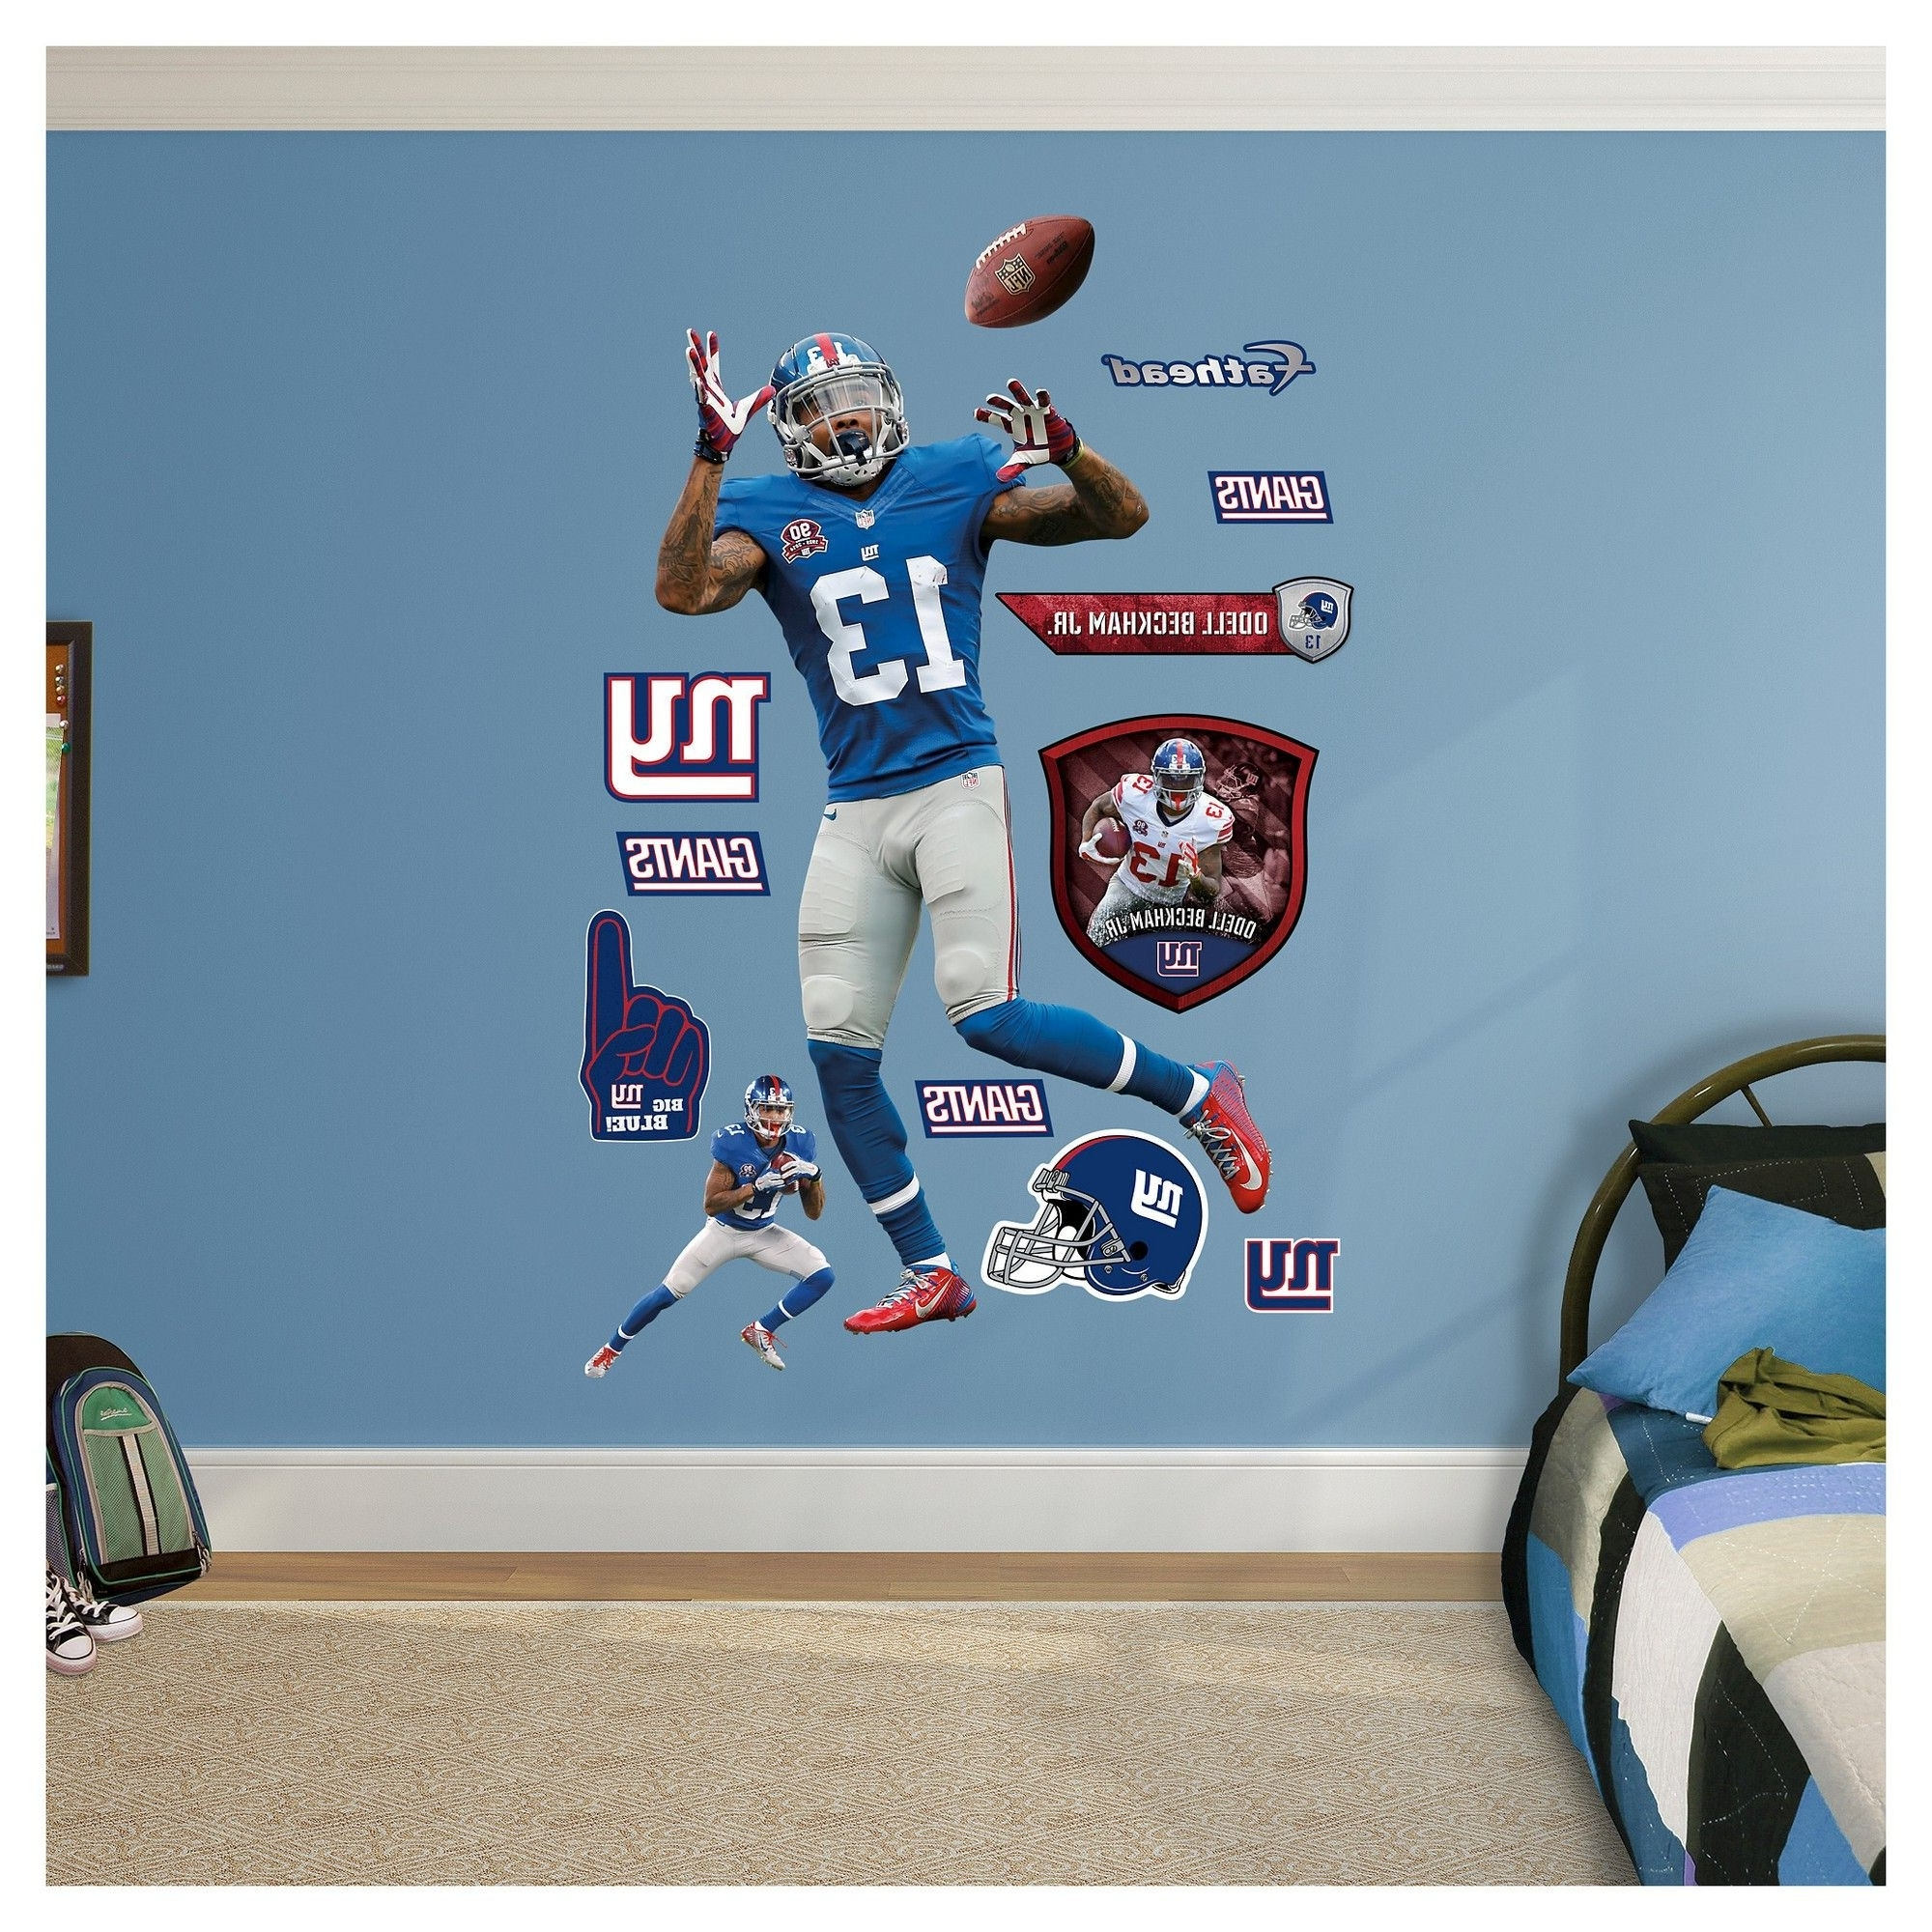 Nfl New York Giants Odell Beckham Jr Fathead Wall Decal Set Blue Throughout Well Known Nfl Wall Art (Gallery 20 of 20)